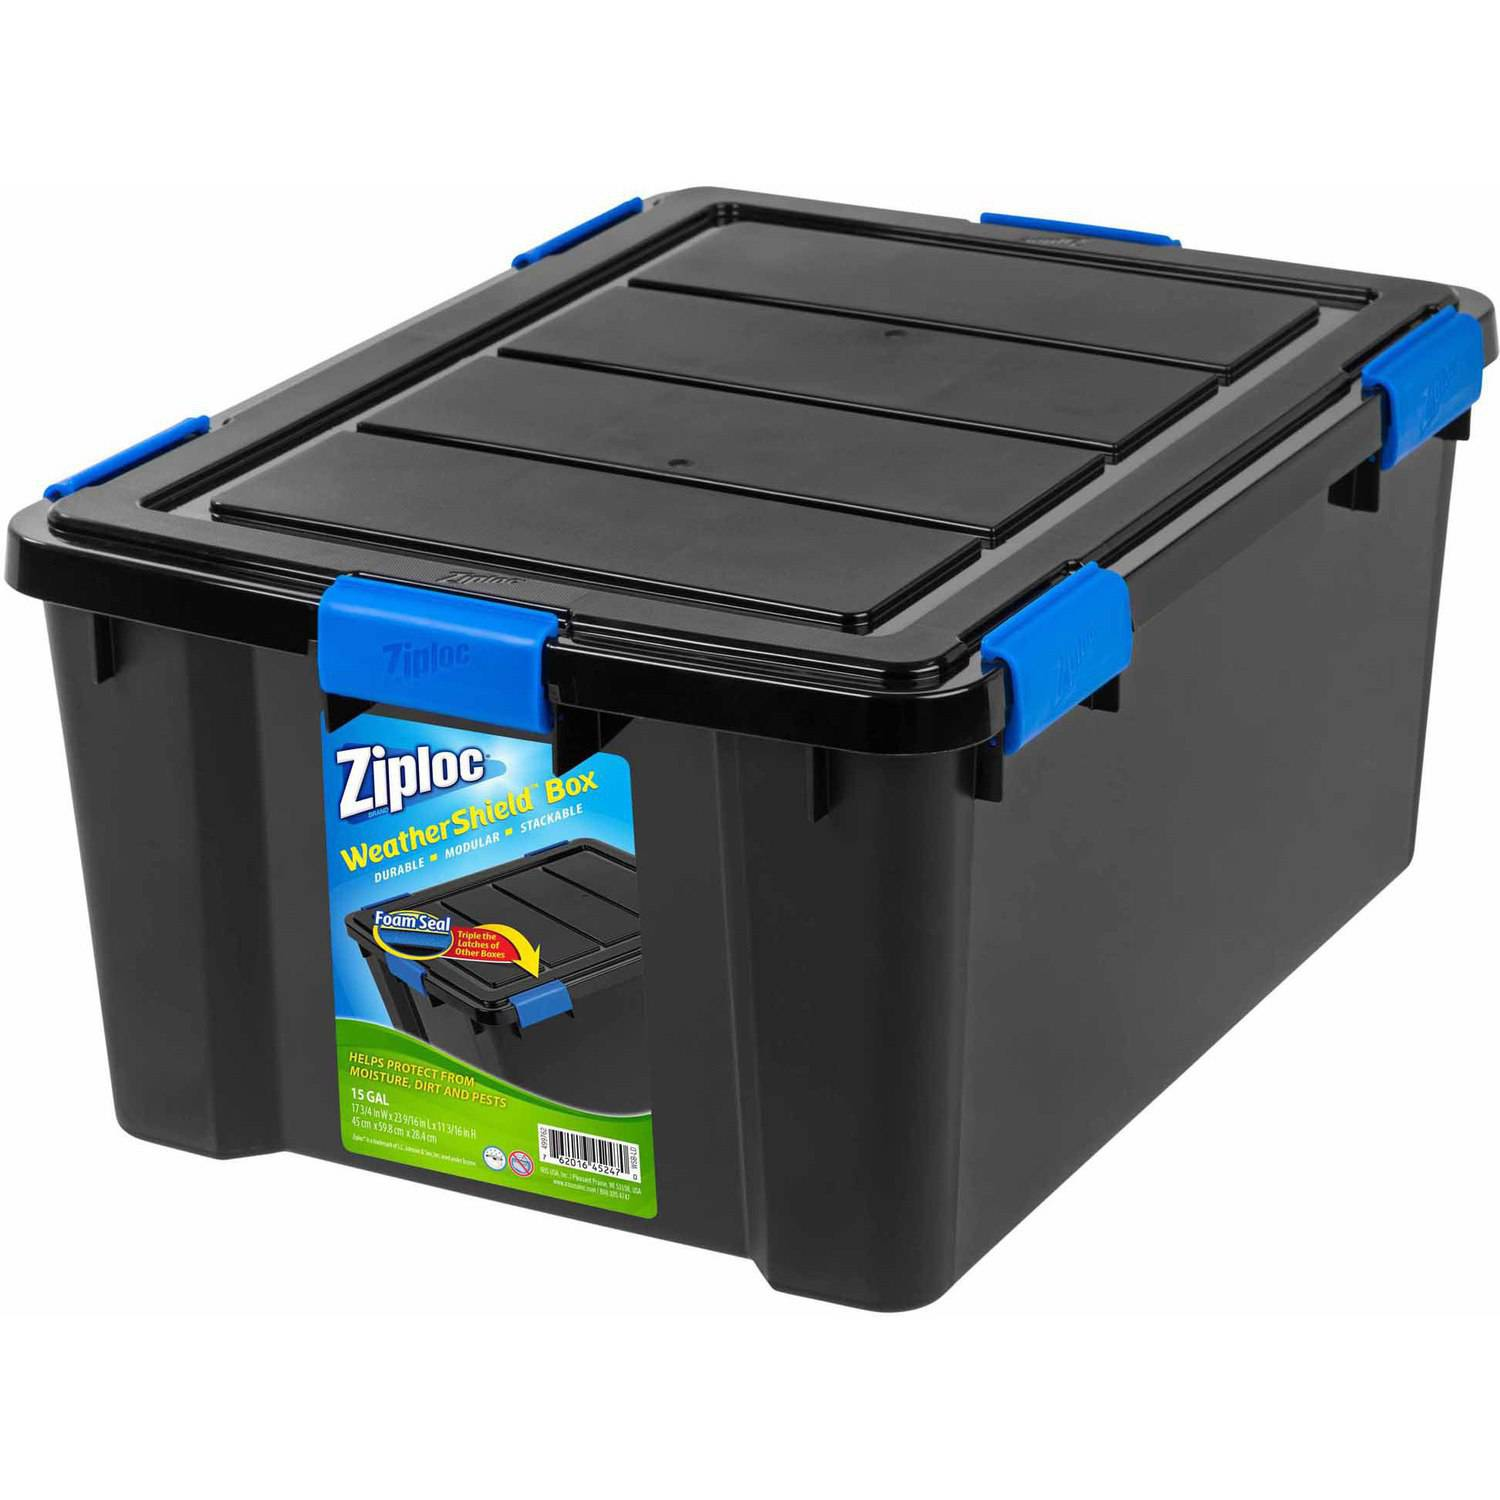 Ziploc 60 Qt. WeatherShield Storage Box, Black